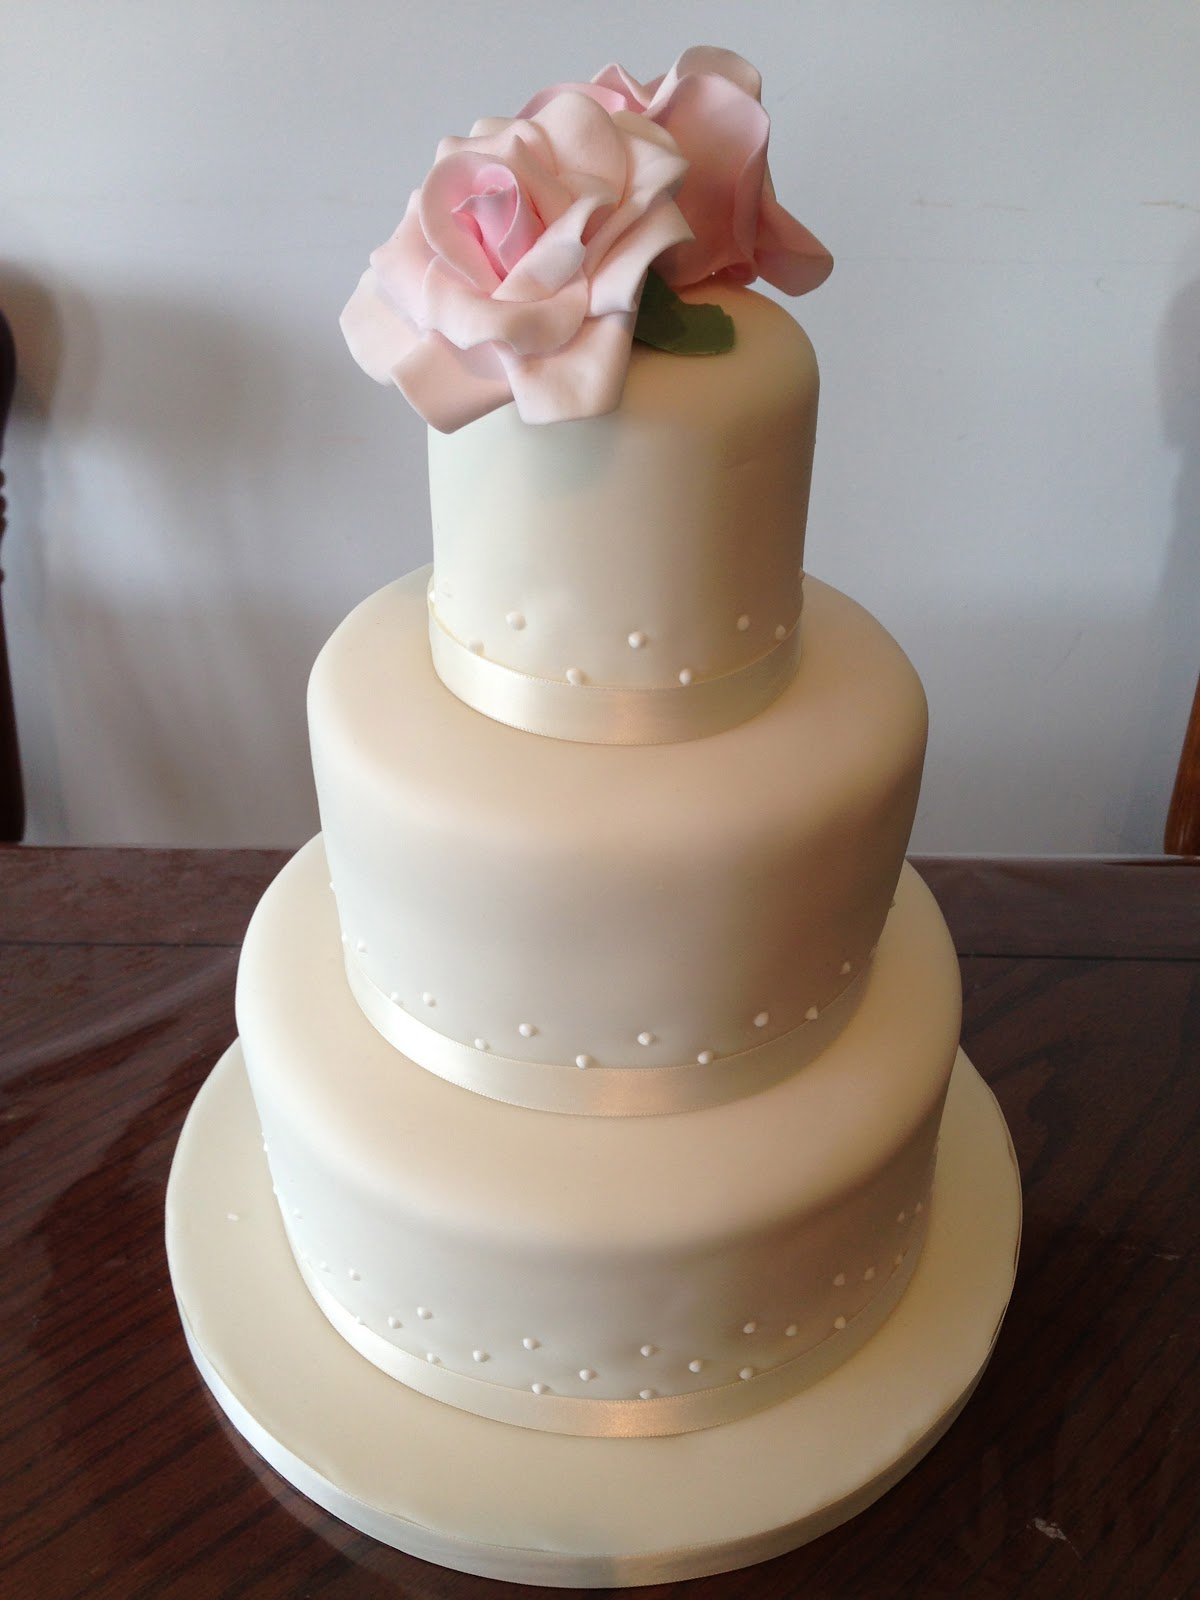 Eggless Bakes 3 tier wedding cake with pink roses